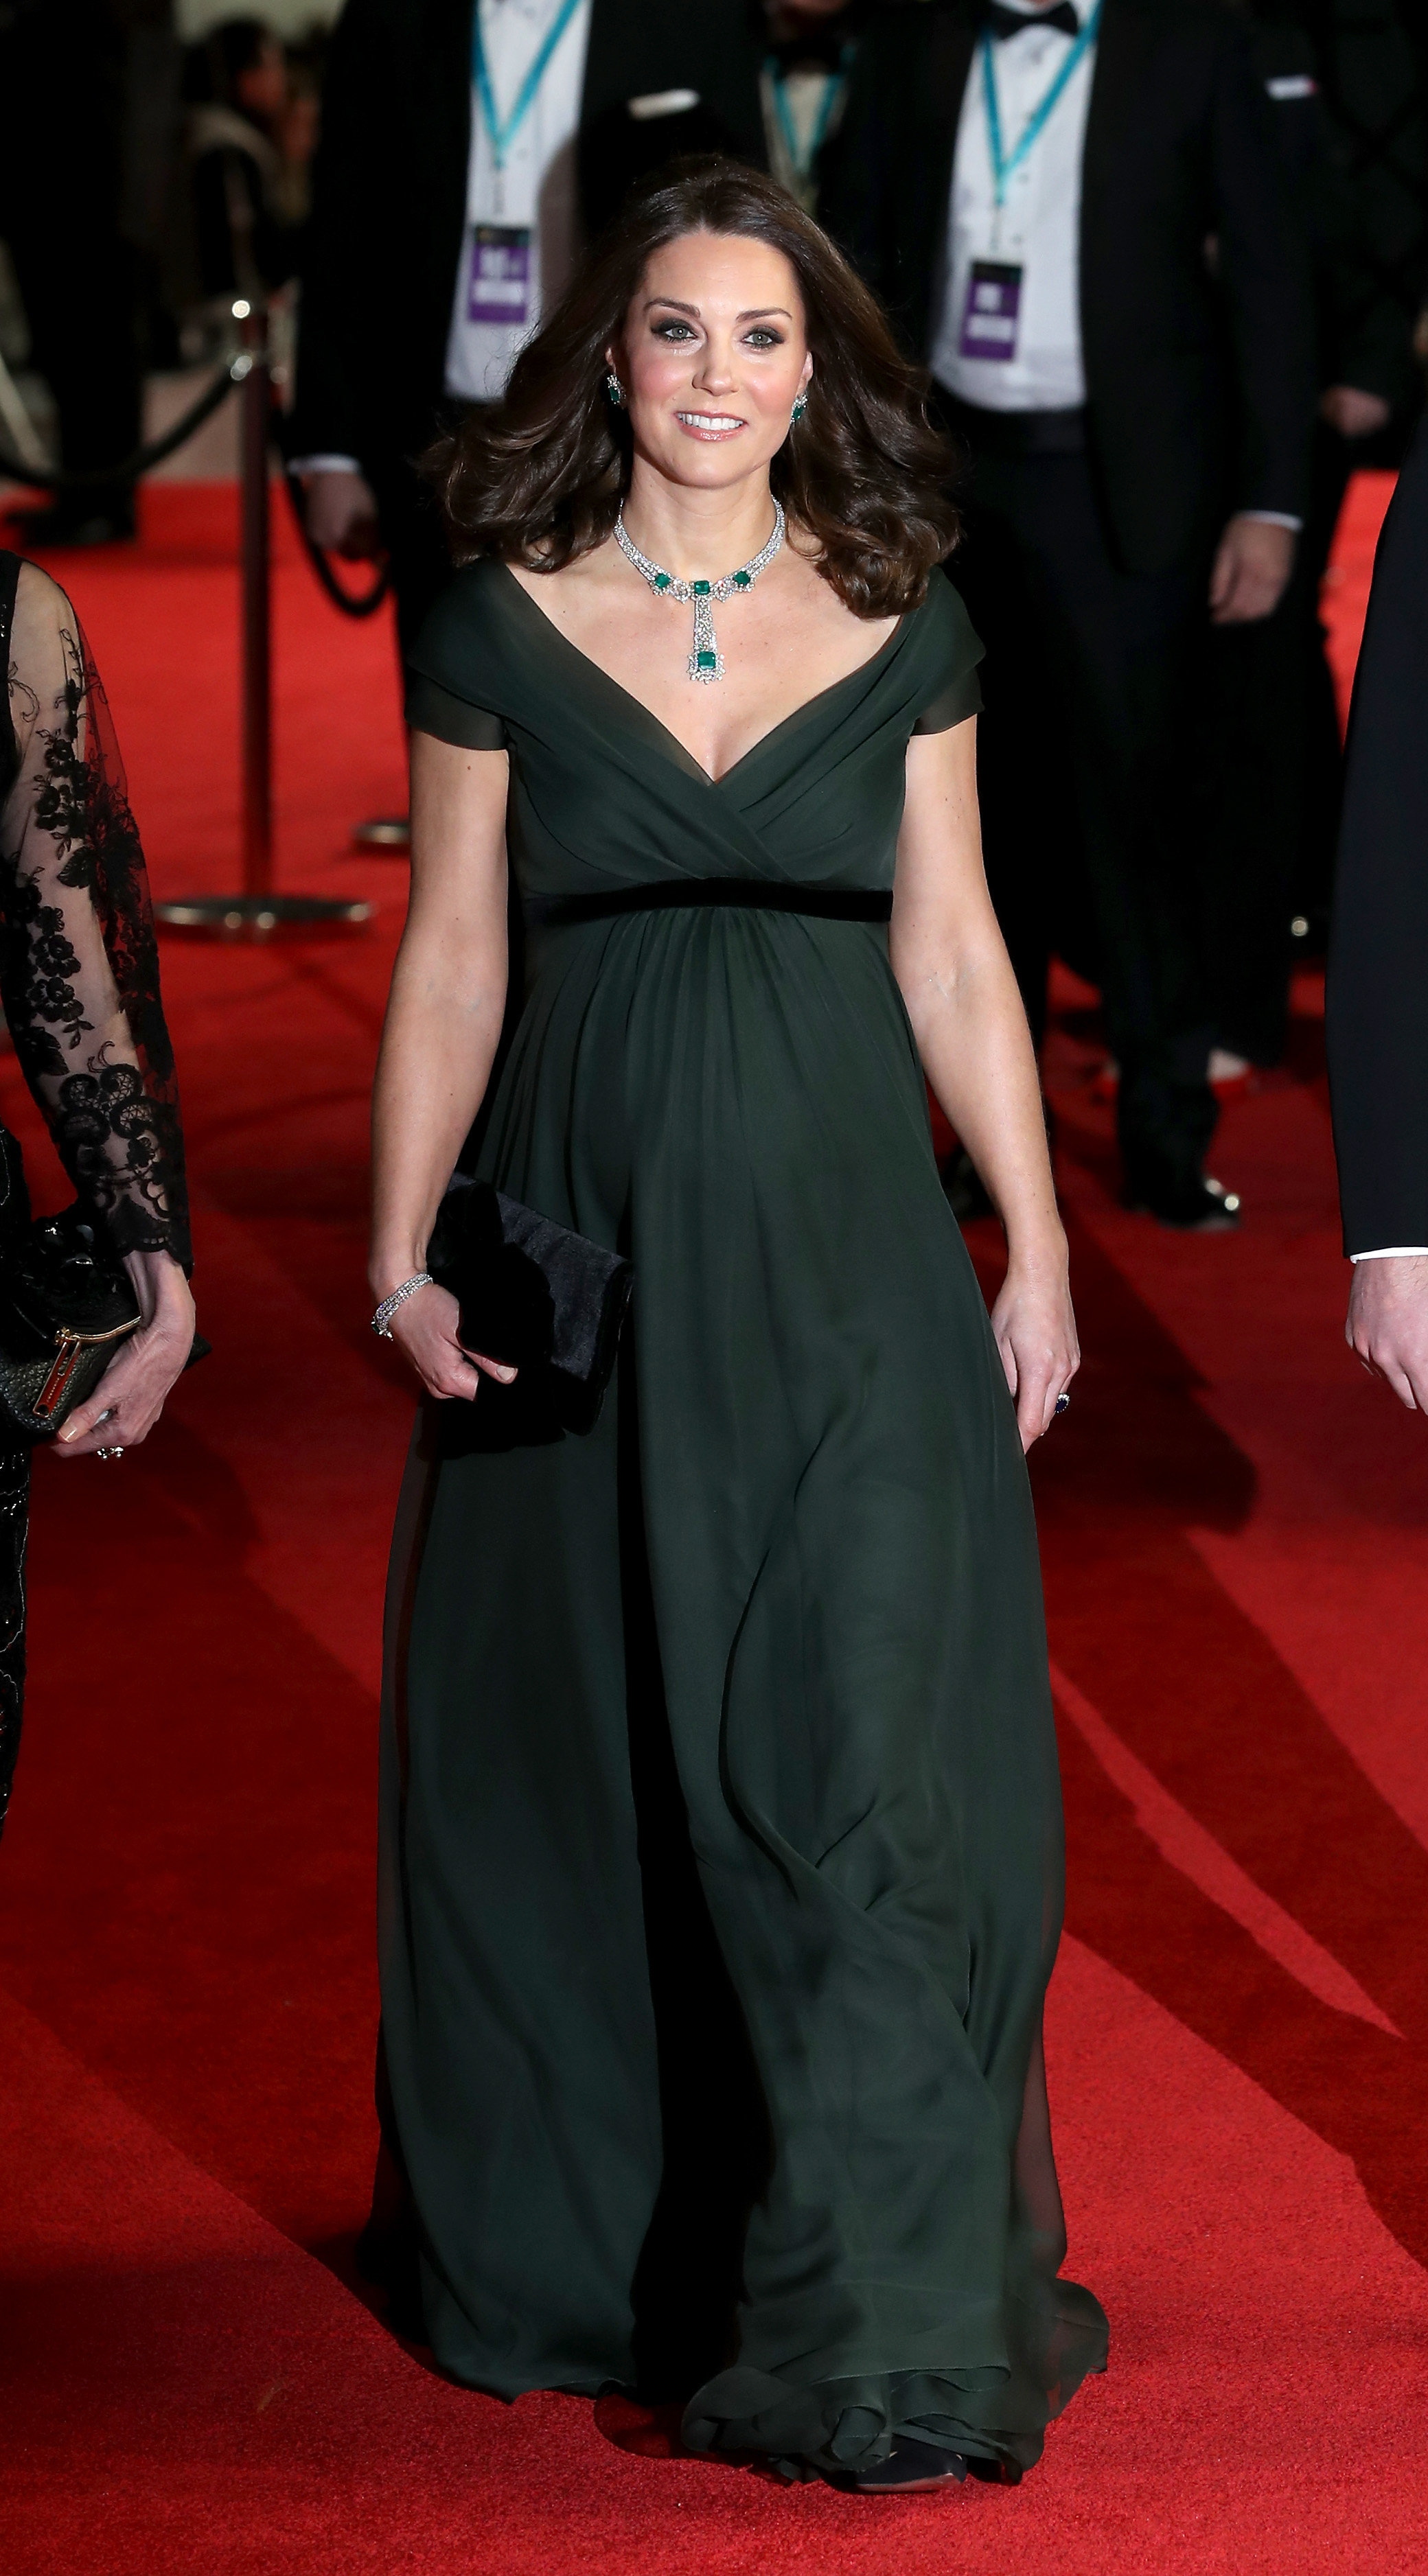 Baftas 2018: The Duchess Of Cambridge Stands Out In Green Gown Amid Black Dress Protest